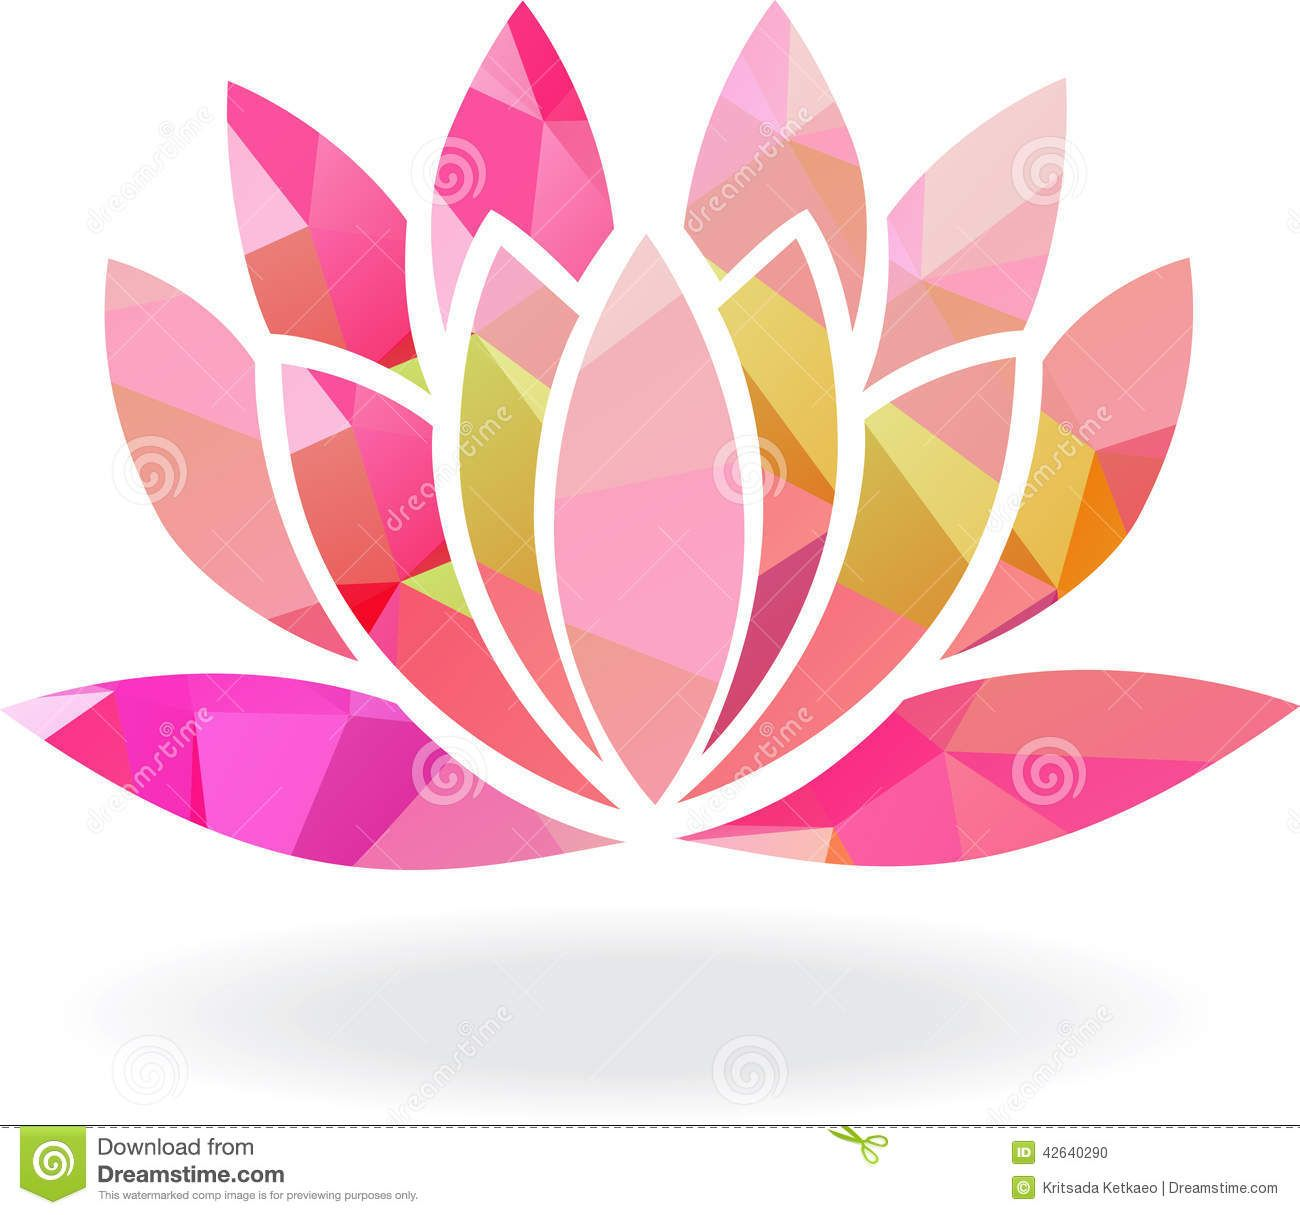 I Feel These Coloured Lotus Flowers Are Used To Often For Yoga So